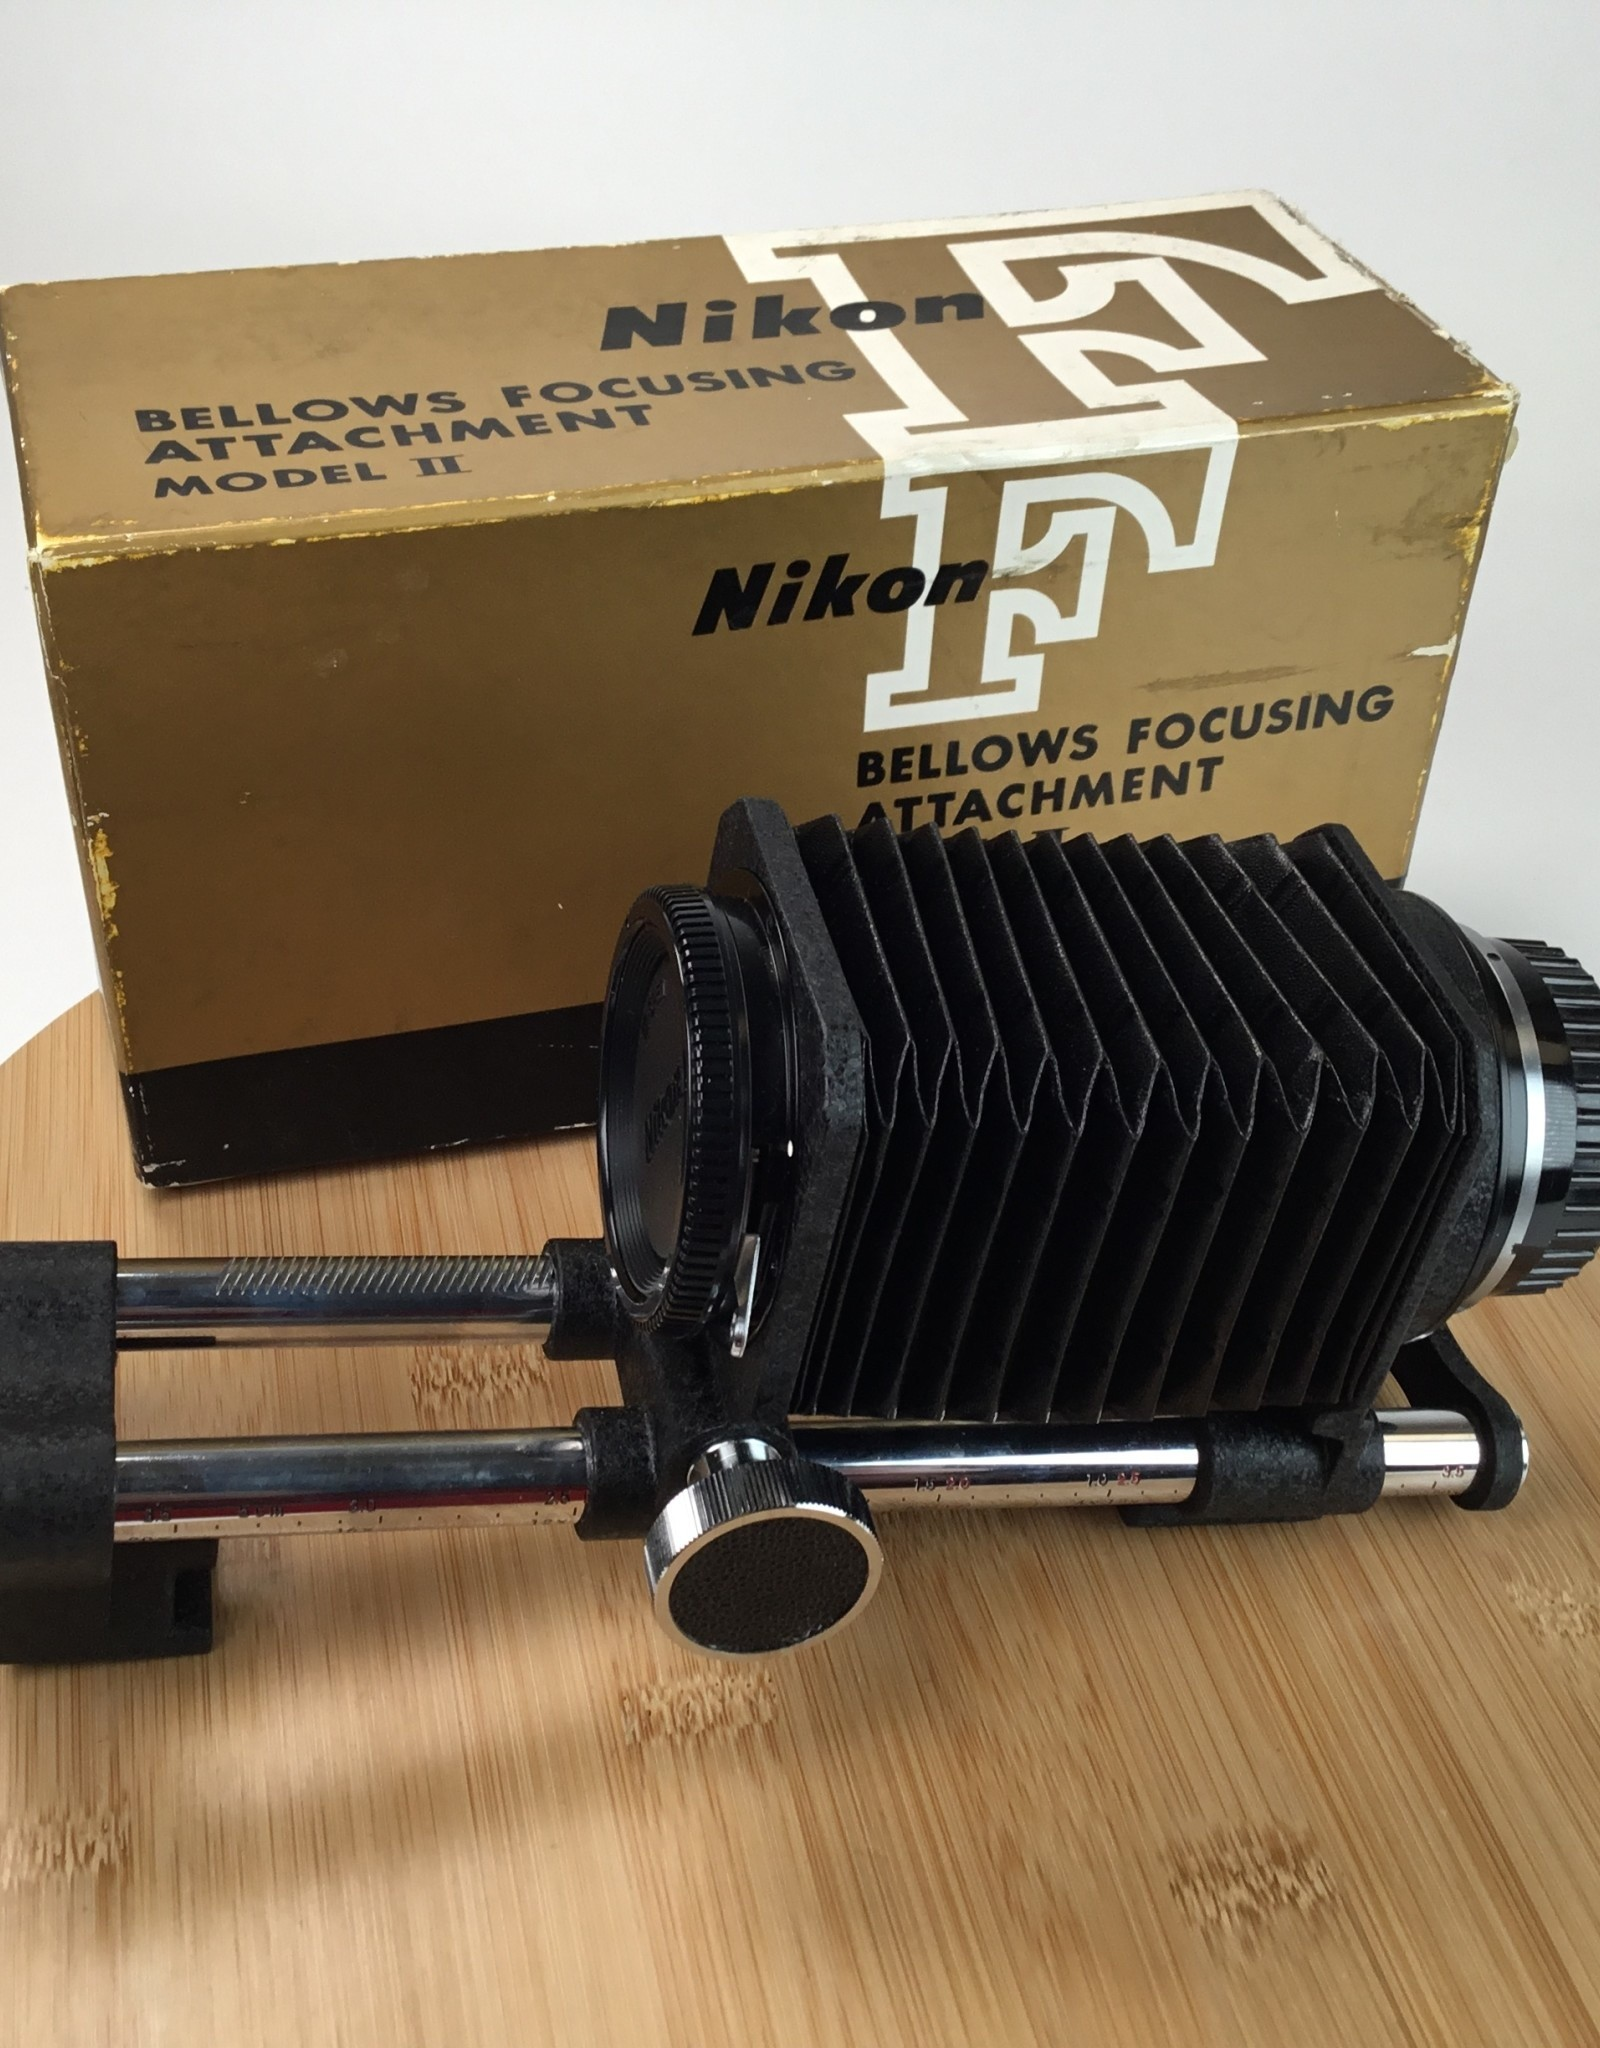 NIKON Nikon Bellows Model II in Box Used EX+